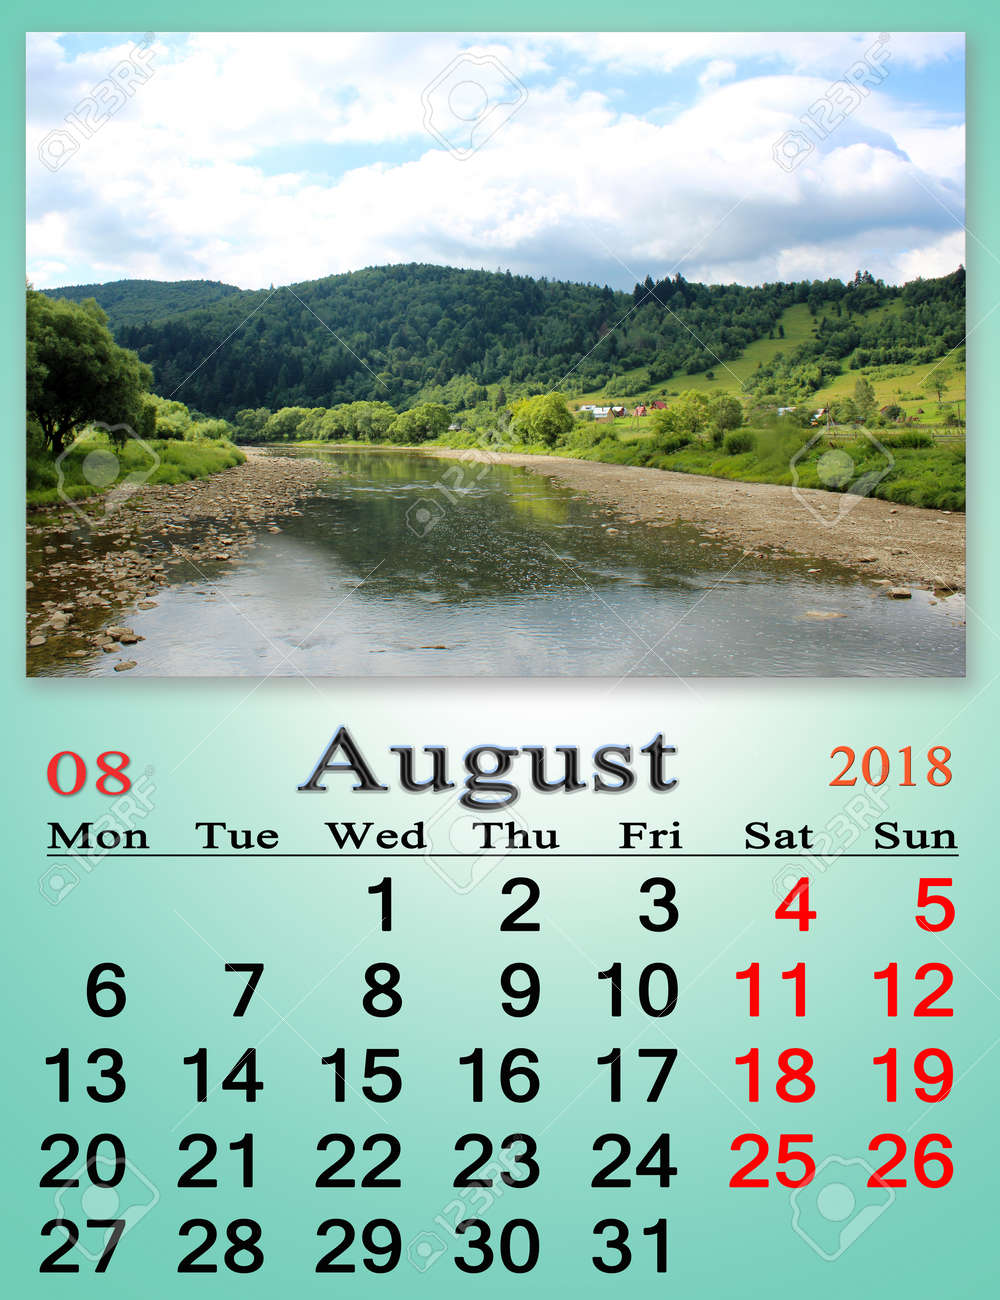 calendar for august 2018 with image of summer landscape with mountain river stock photo 89757573